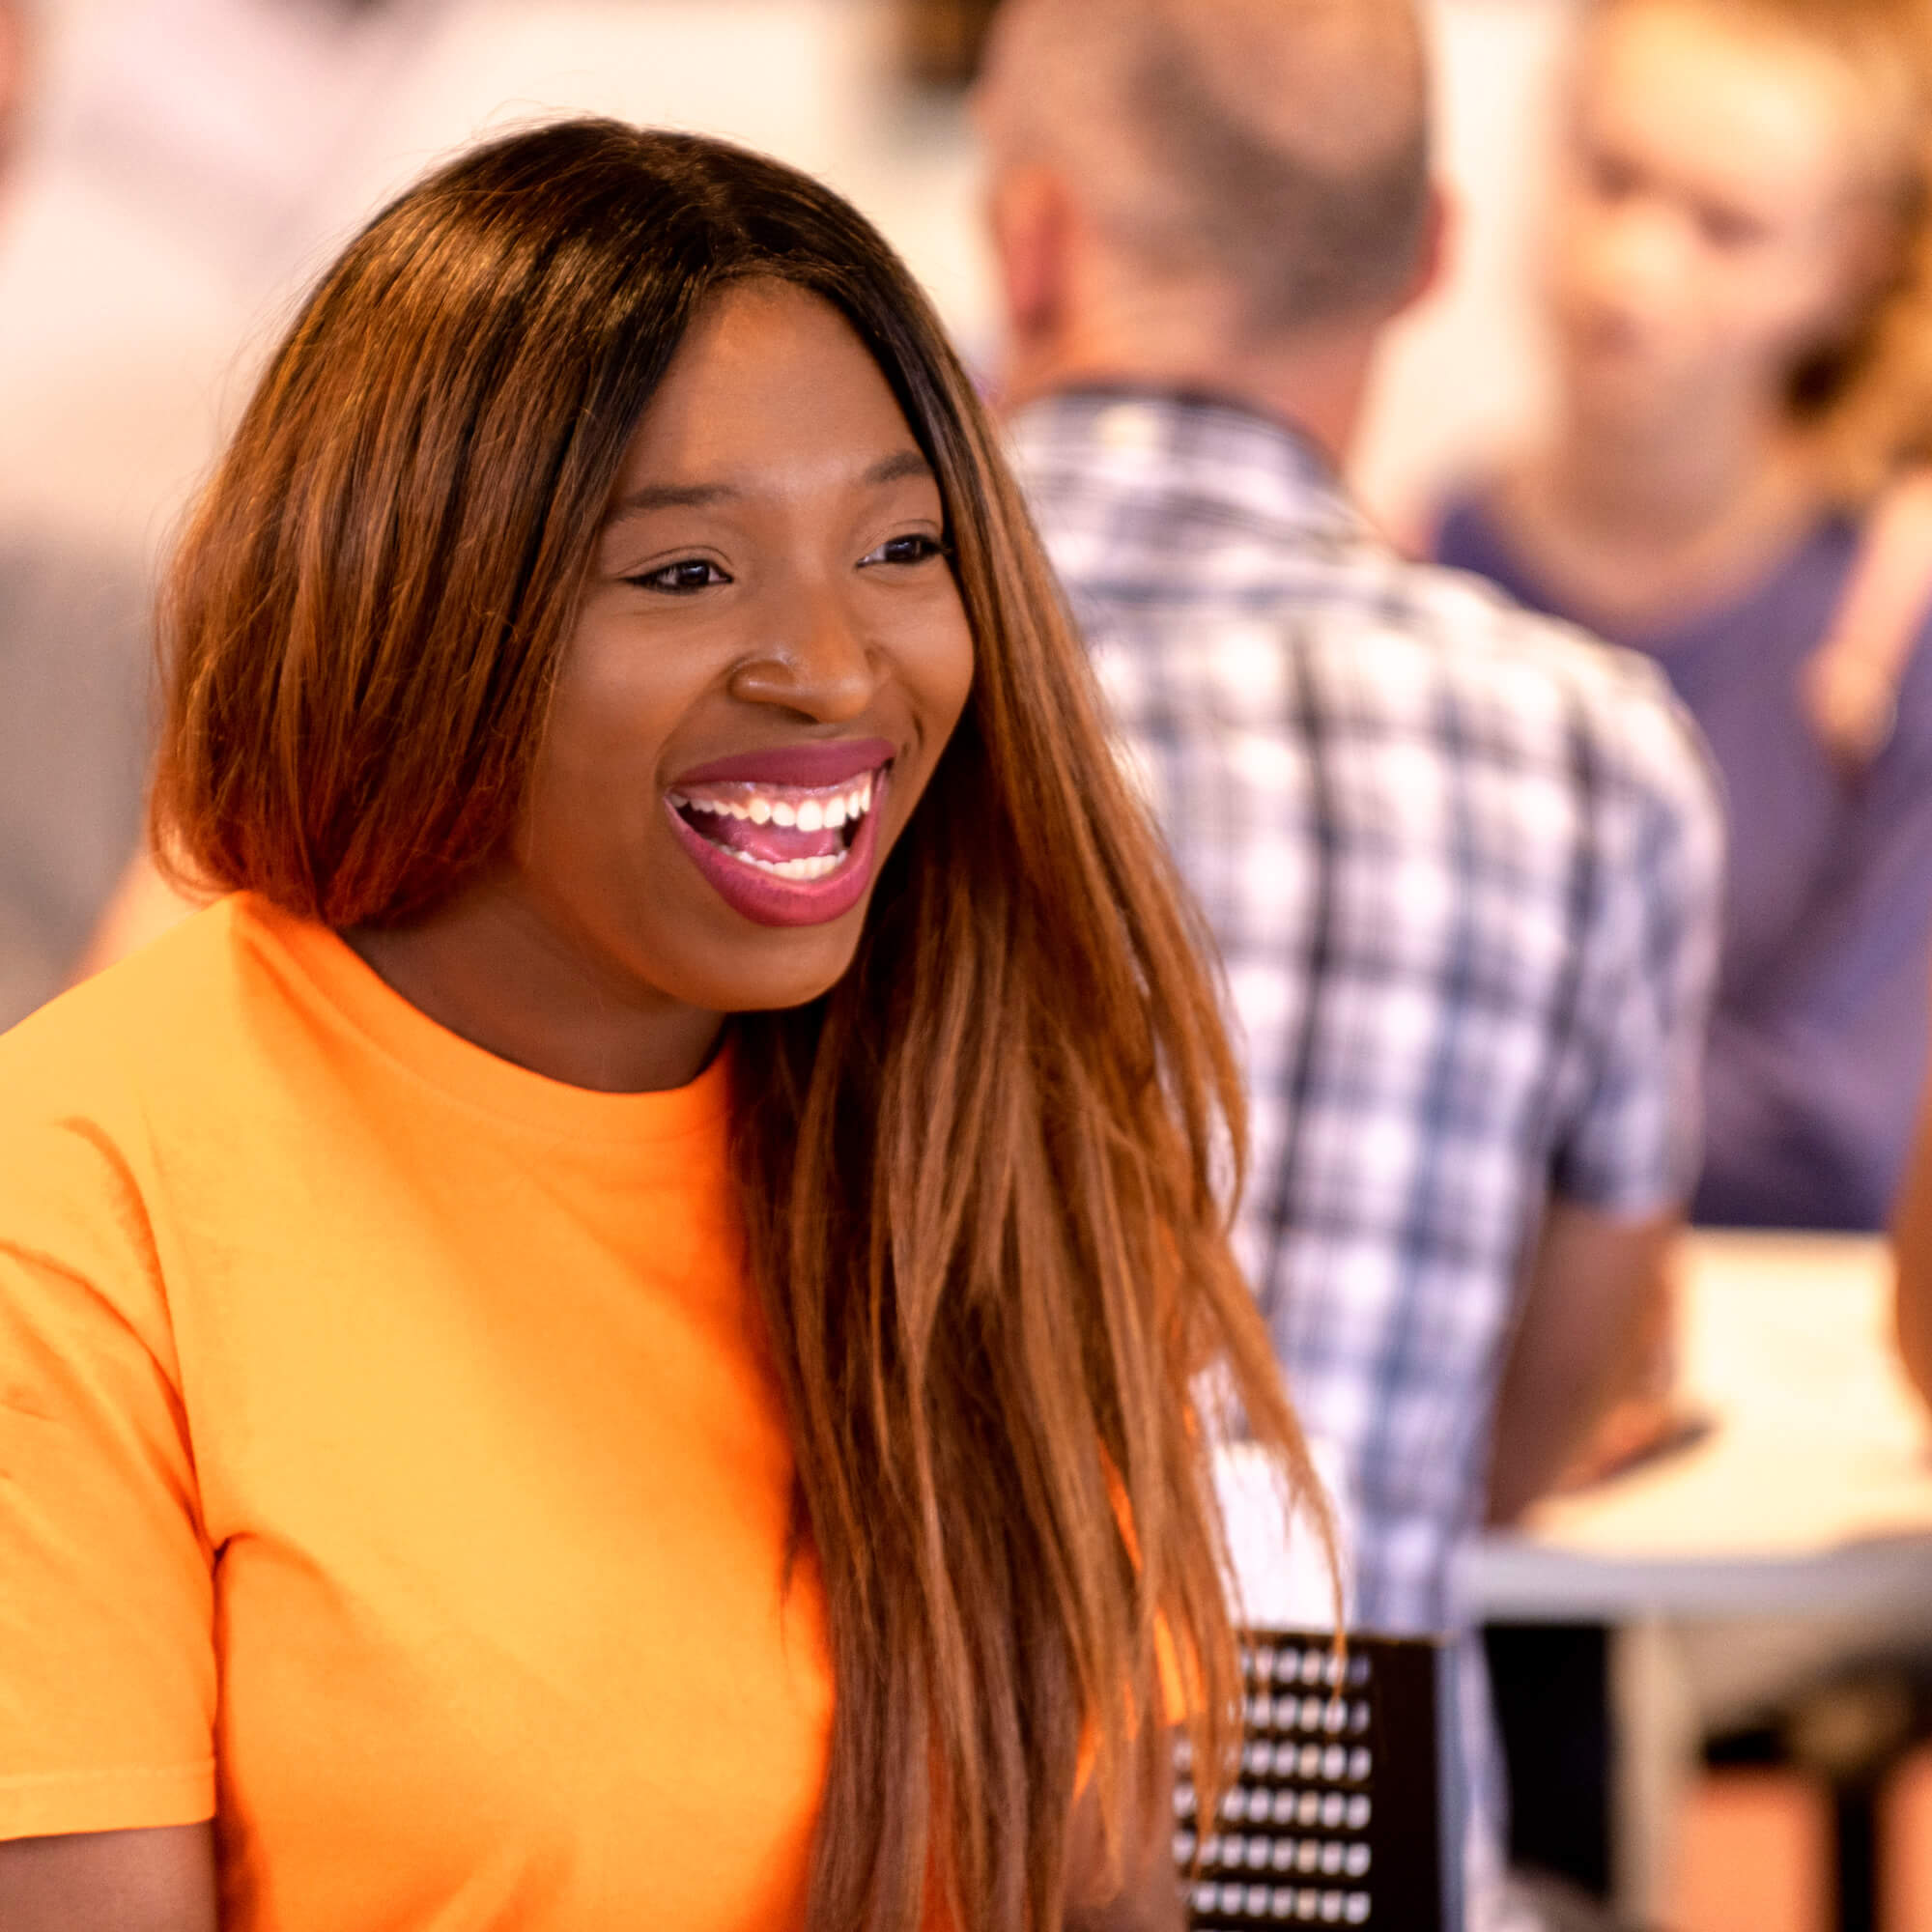 A female student smiling at an Open Day